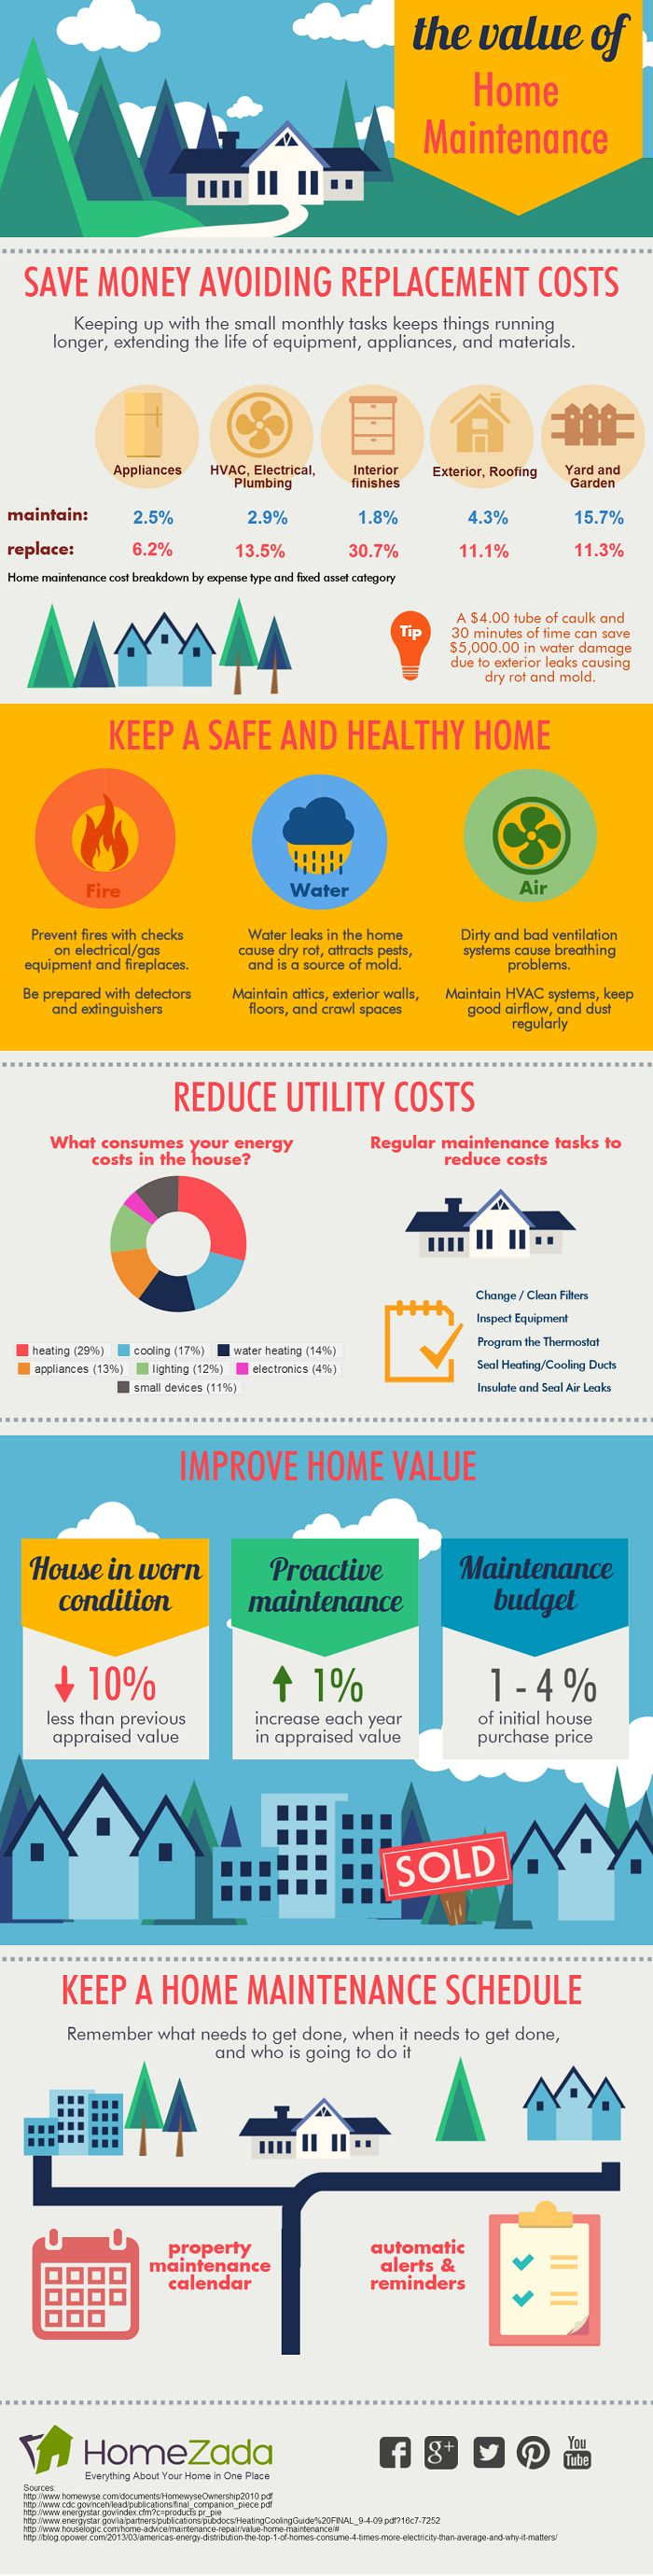 No one likes to do home maintenance. But this infographic shows five key reasons why keeping up-to-date on those monthly tasks have a big impact on the health and safety of your family, the ability to save money annually, and to help maintain if not improve the value of your home for future re-sale purposes.